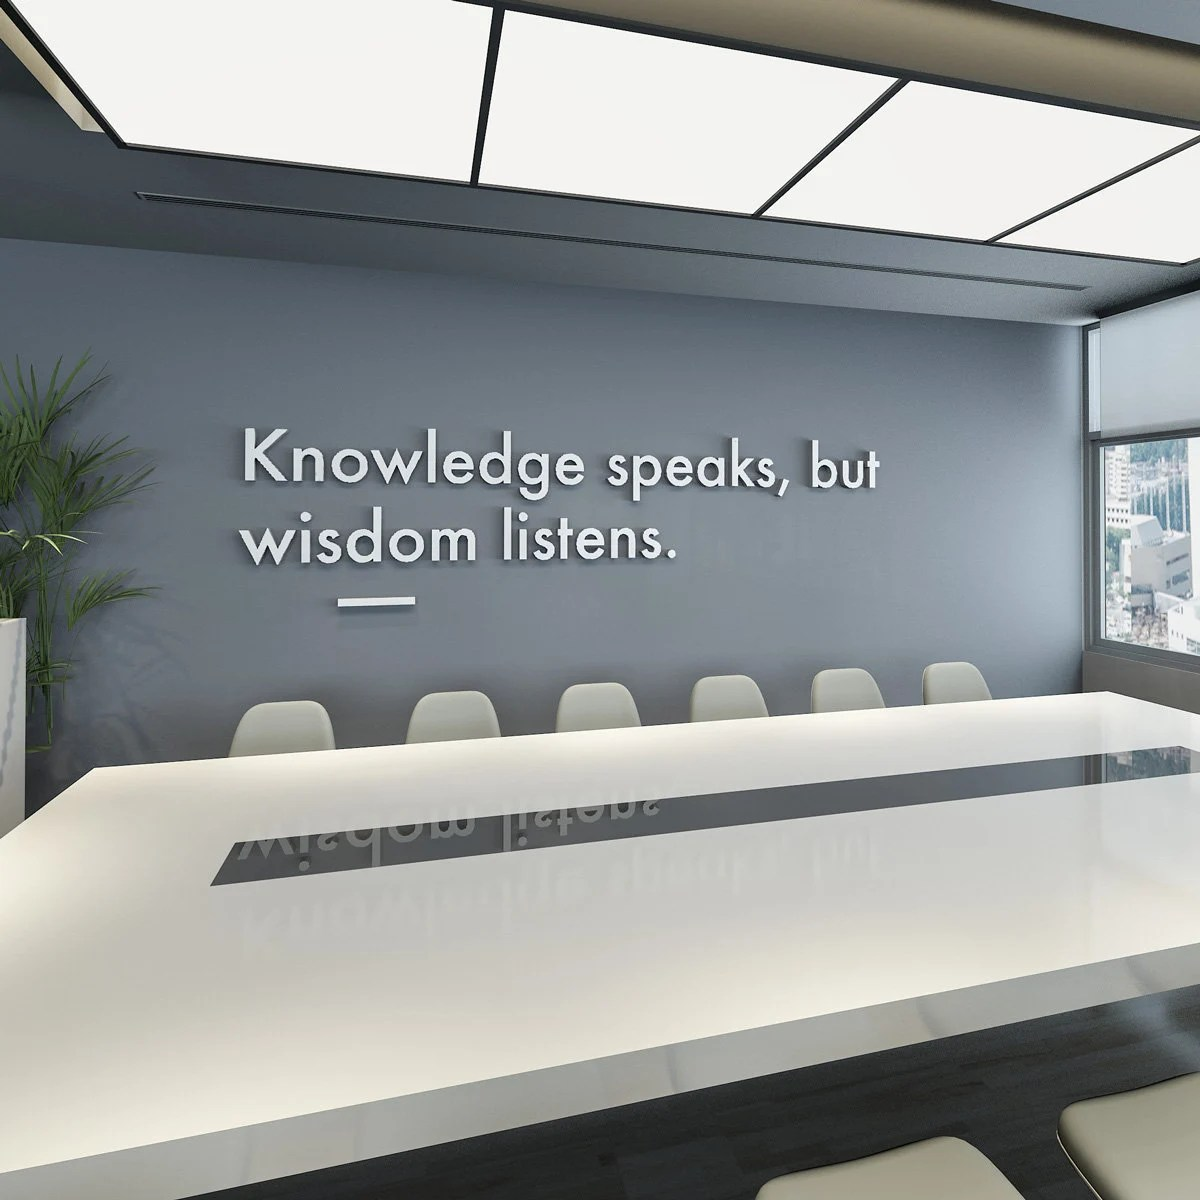 3d Wall Decor Wisdom Listens 3d Wall Art Office Decor Office Wall Art Meeting Room Office Art Wall Decor 3d Office Quotes Quotes Sku Kswl